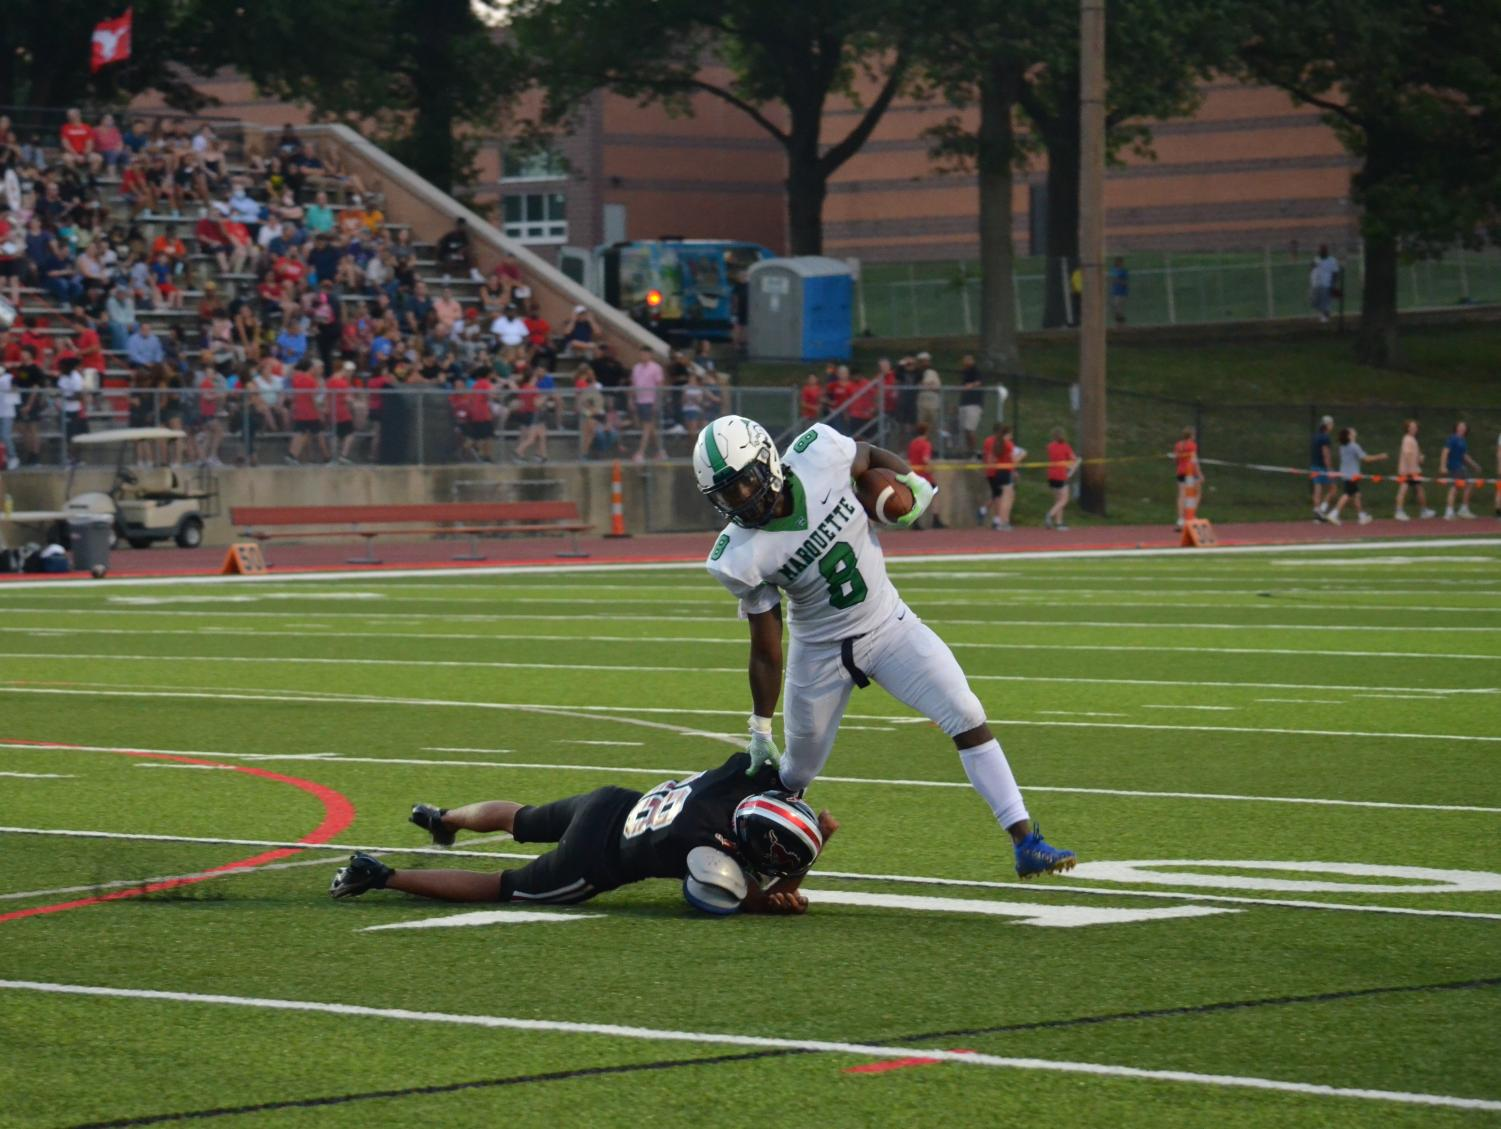 Photo+Gallery%3A+Mustangs+Defeat+Parkway+Central+In+First+Football+Game+Of+The+Season